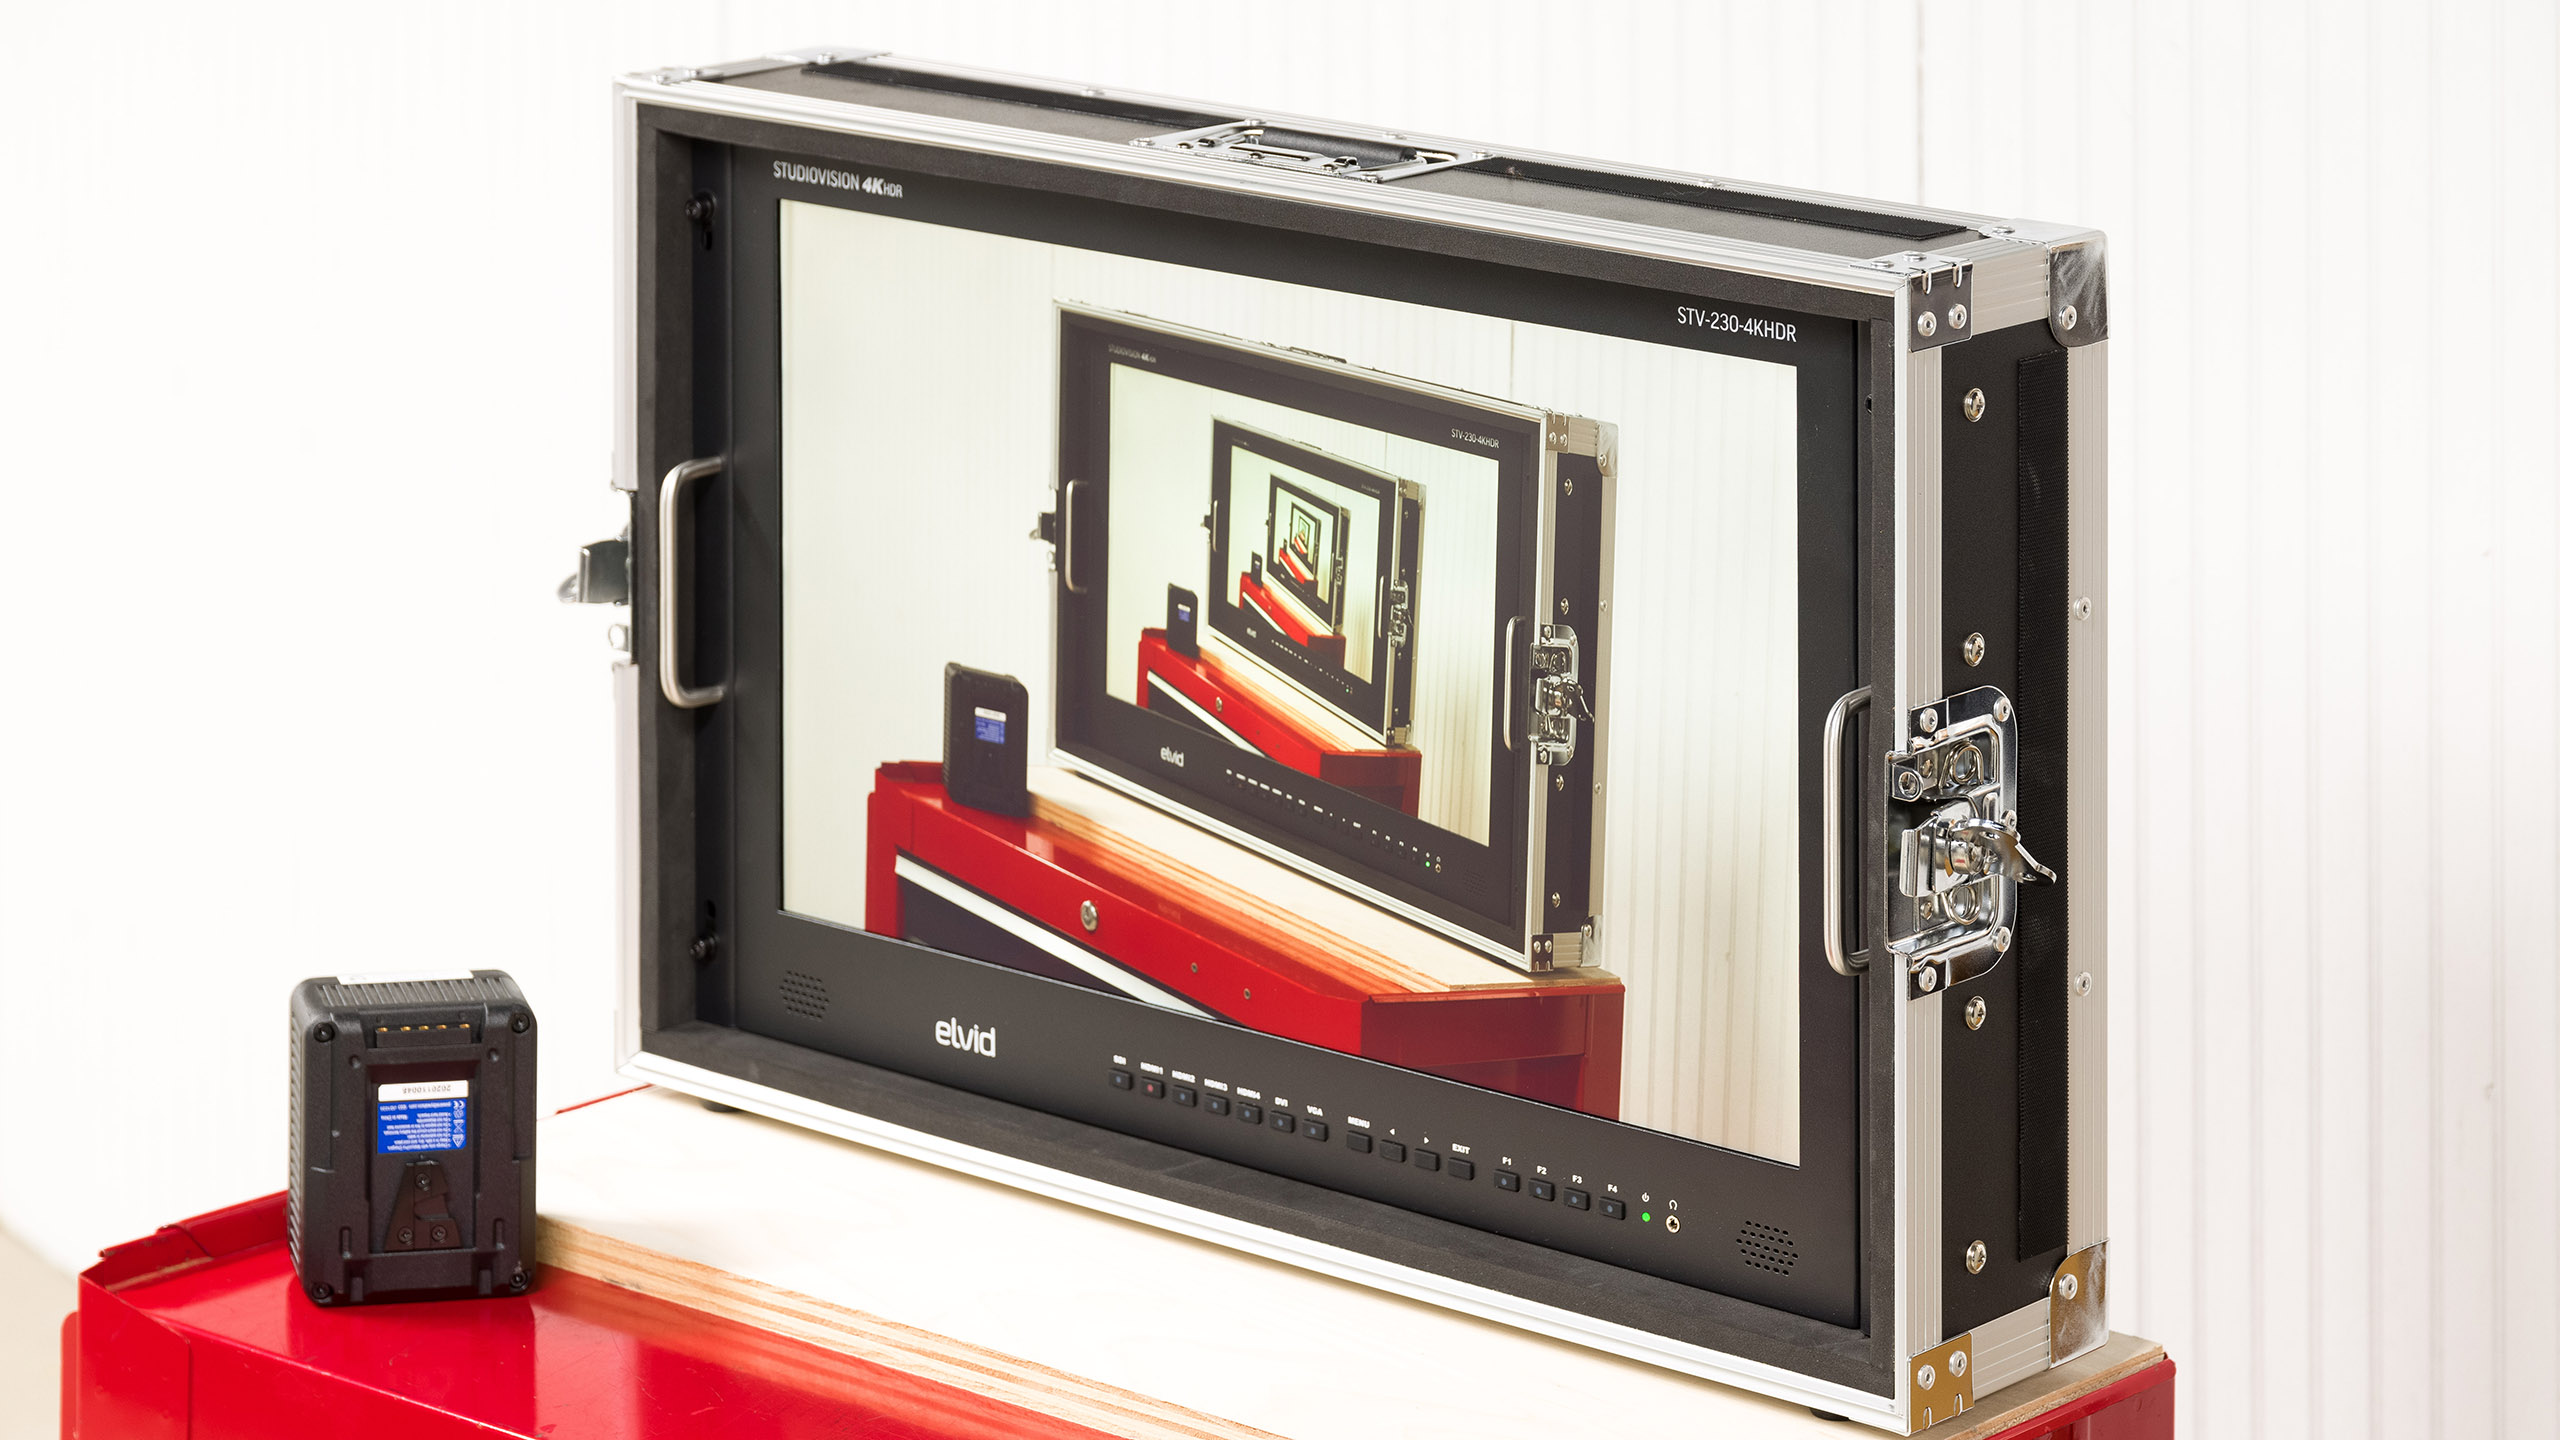 Elvid StudioVision 4K HDMI Monitor with HDR for field and studio